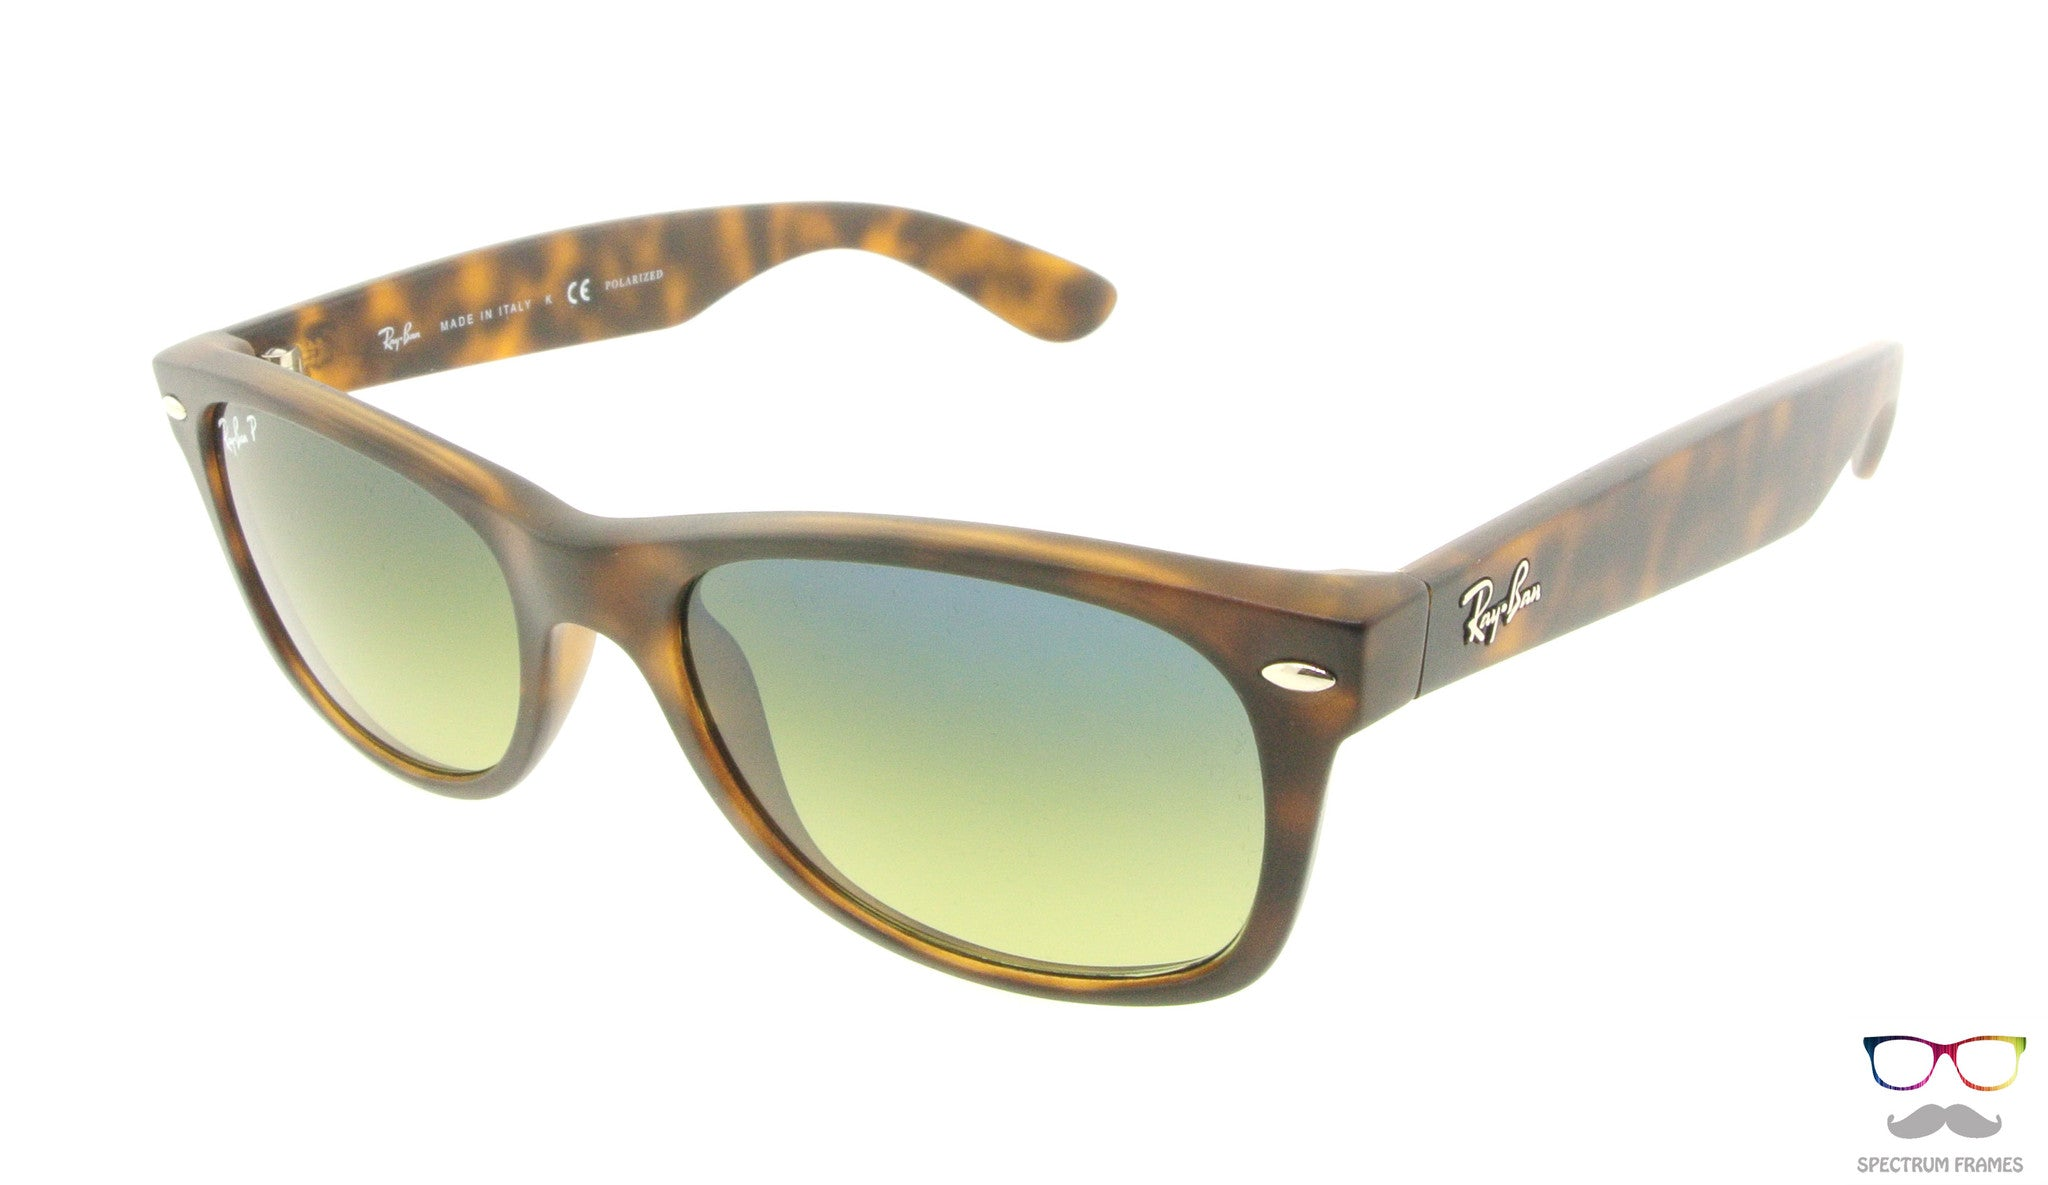 1c6e0dac21 Ray Ban Sunglasses RB 2132 894 76 Havana with Gradient Polarized Lens Size  55